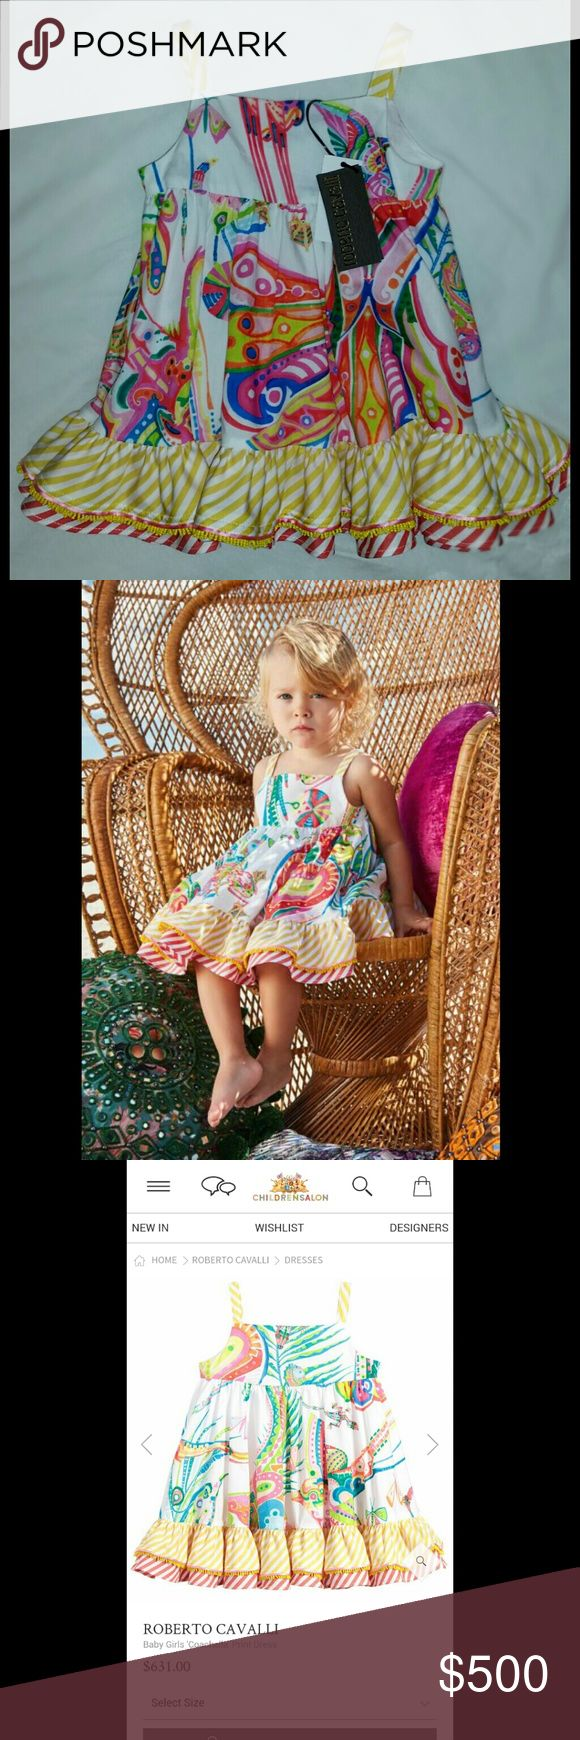 "Brand New 2017 Roberto Cavalli ""Coachella"" Dress Roberto Cavalli Spring/Summer Line ""Coachella"" Dress 6 months So Gorgeous in Person On Childrens Salon and Roberto Cavallis website right now for $630  Baby girls will love wearing this this adorable sun dress, with its vibrant jungle 'Coachella' print. The wonderfully full skirt is given extra movement and volume by layers of ruffles at the hem, perfect for swirling and swirling on a summer's day.?  Product number 160546 Roberto Cavalli…"